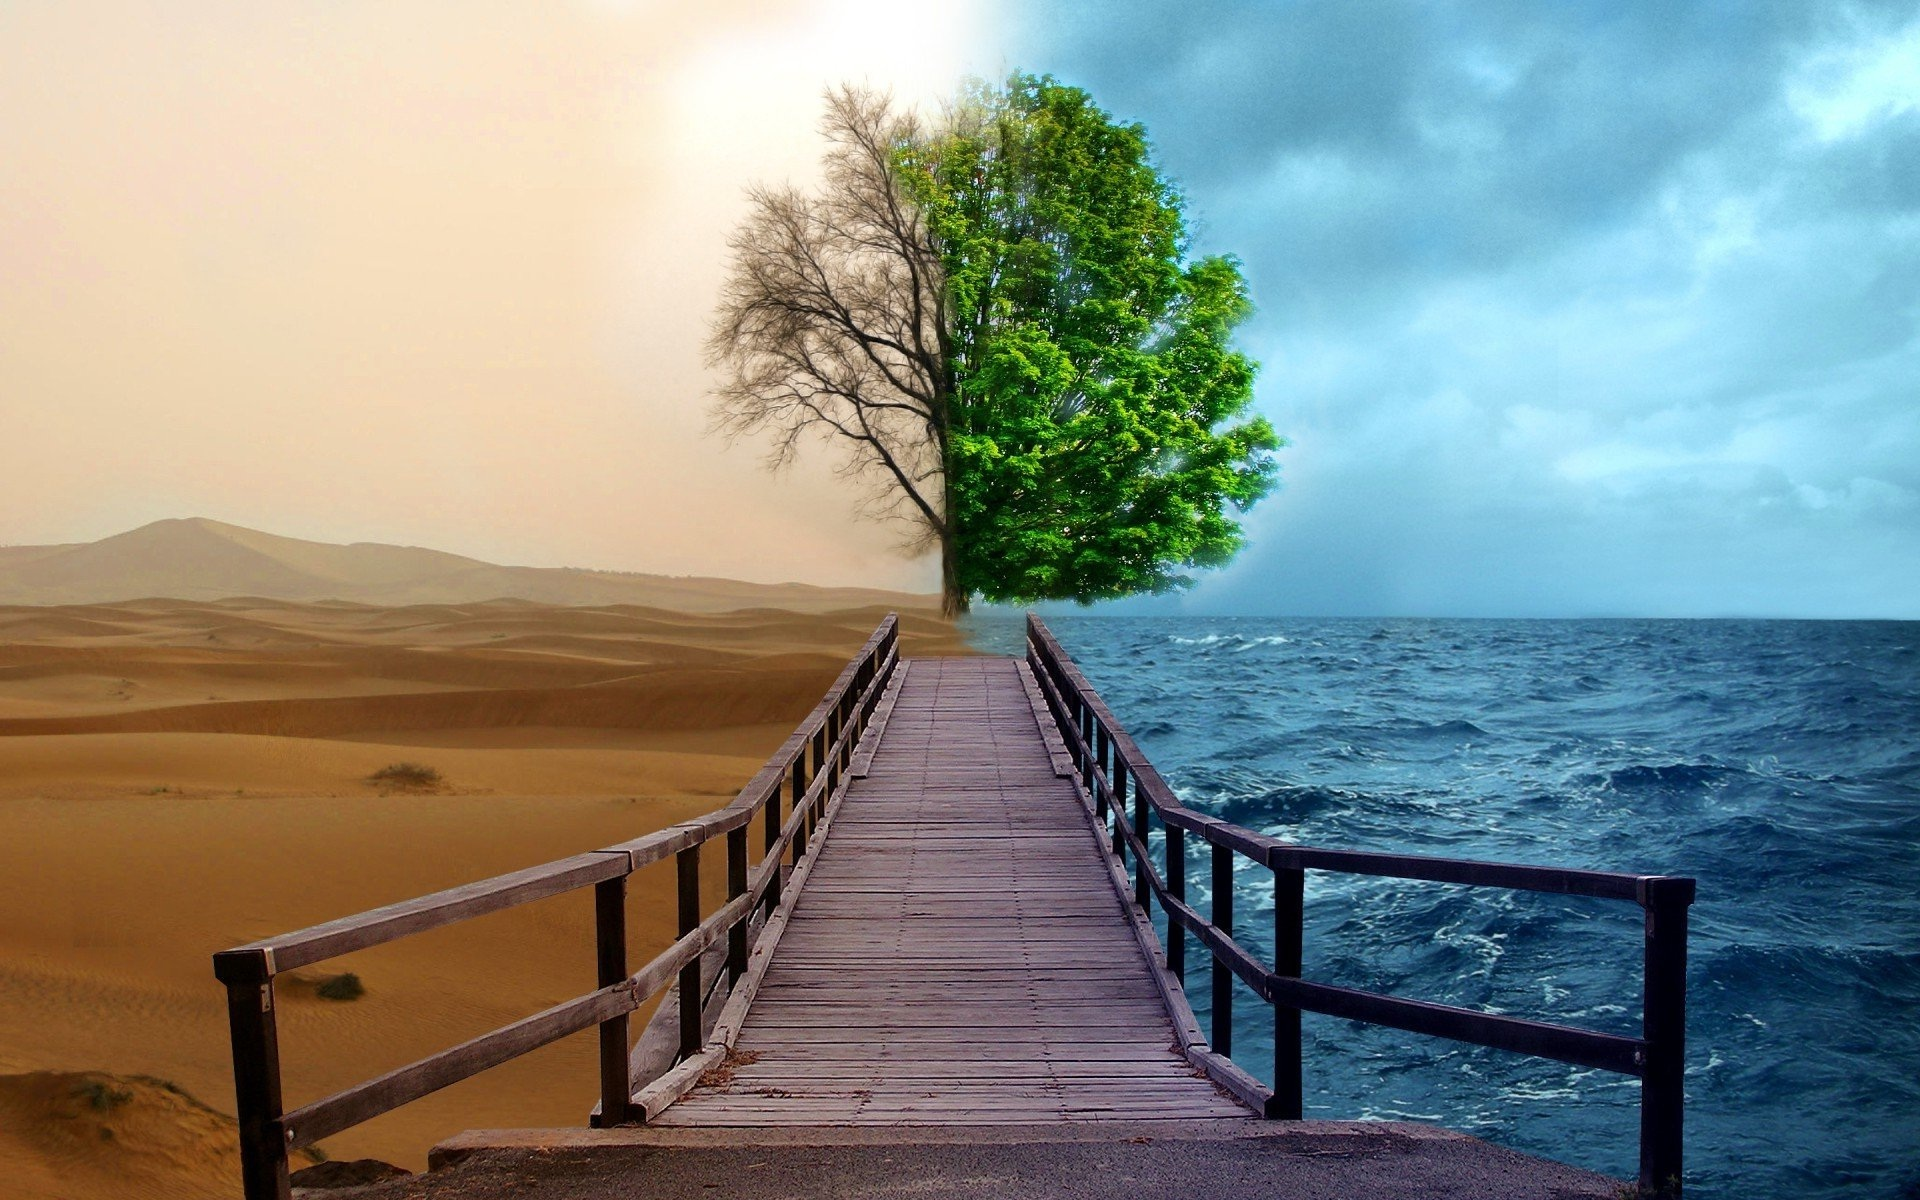 creative nature hd wallpapers | hd wallpapers